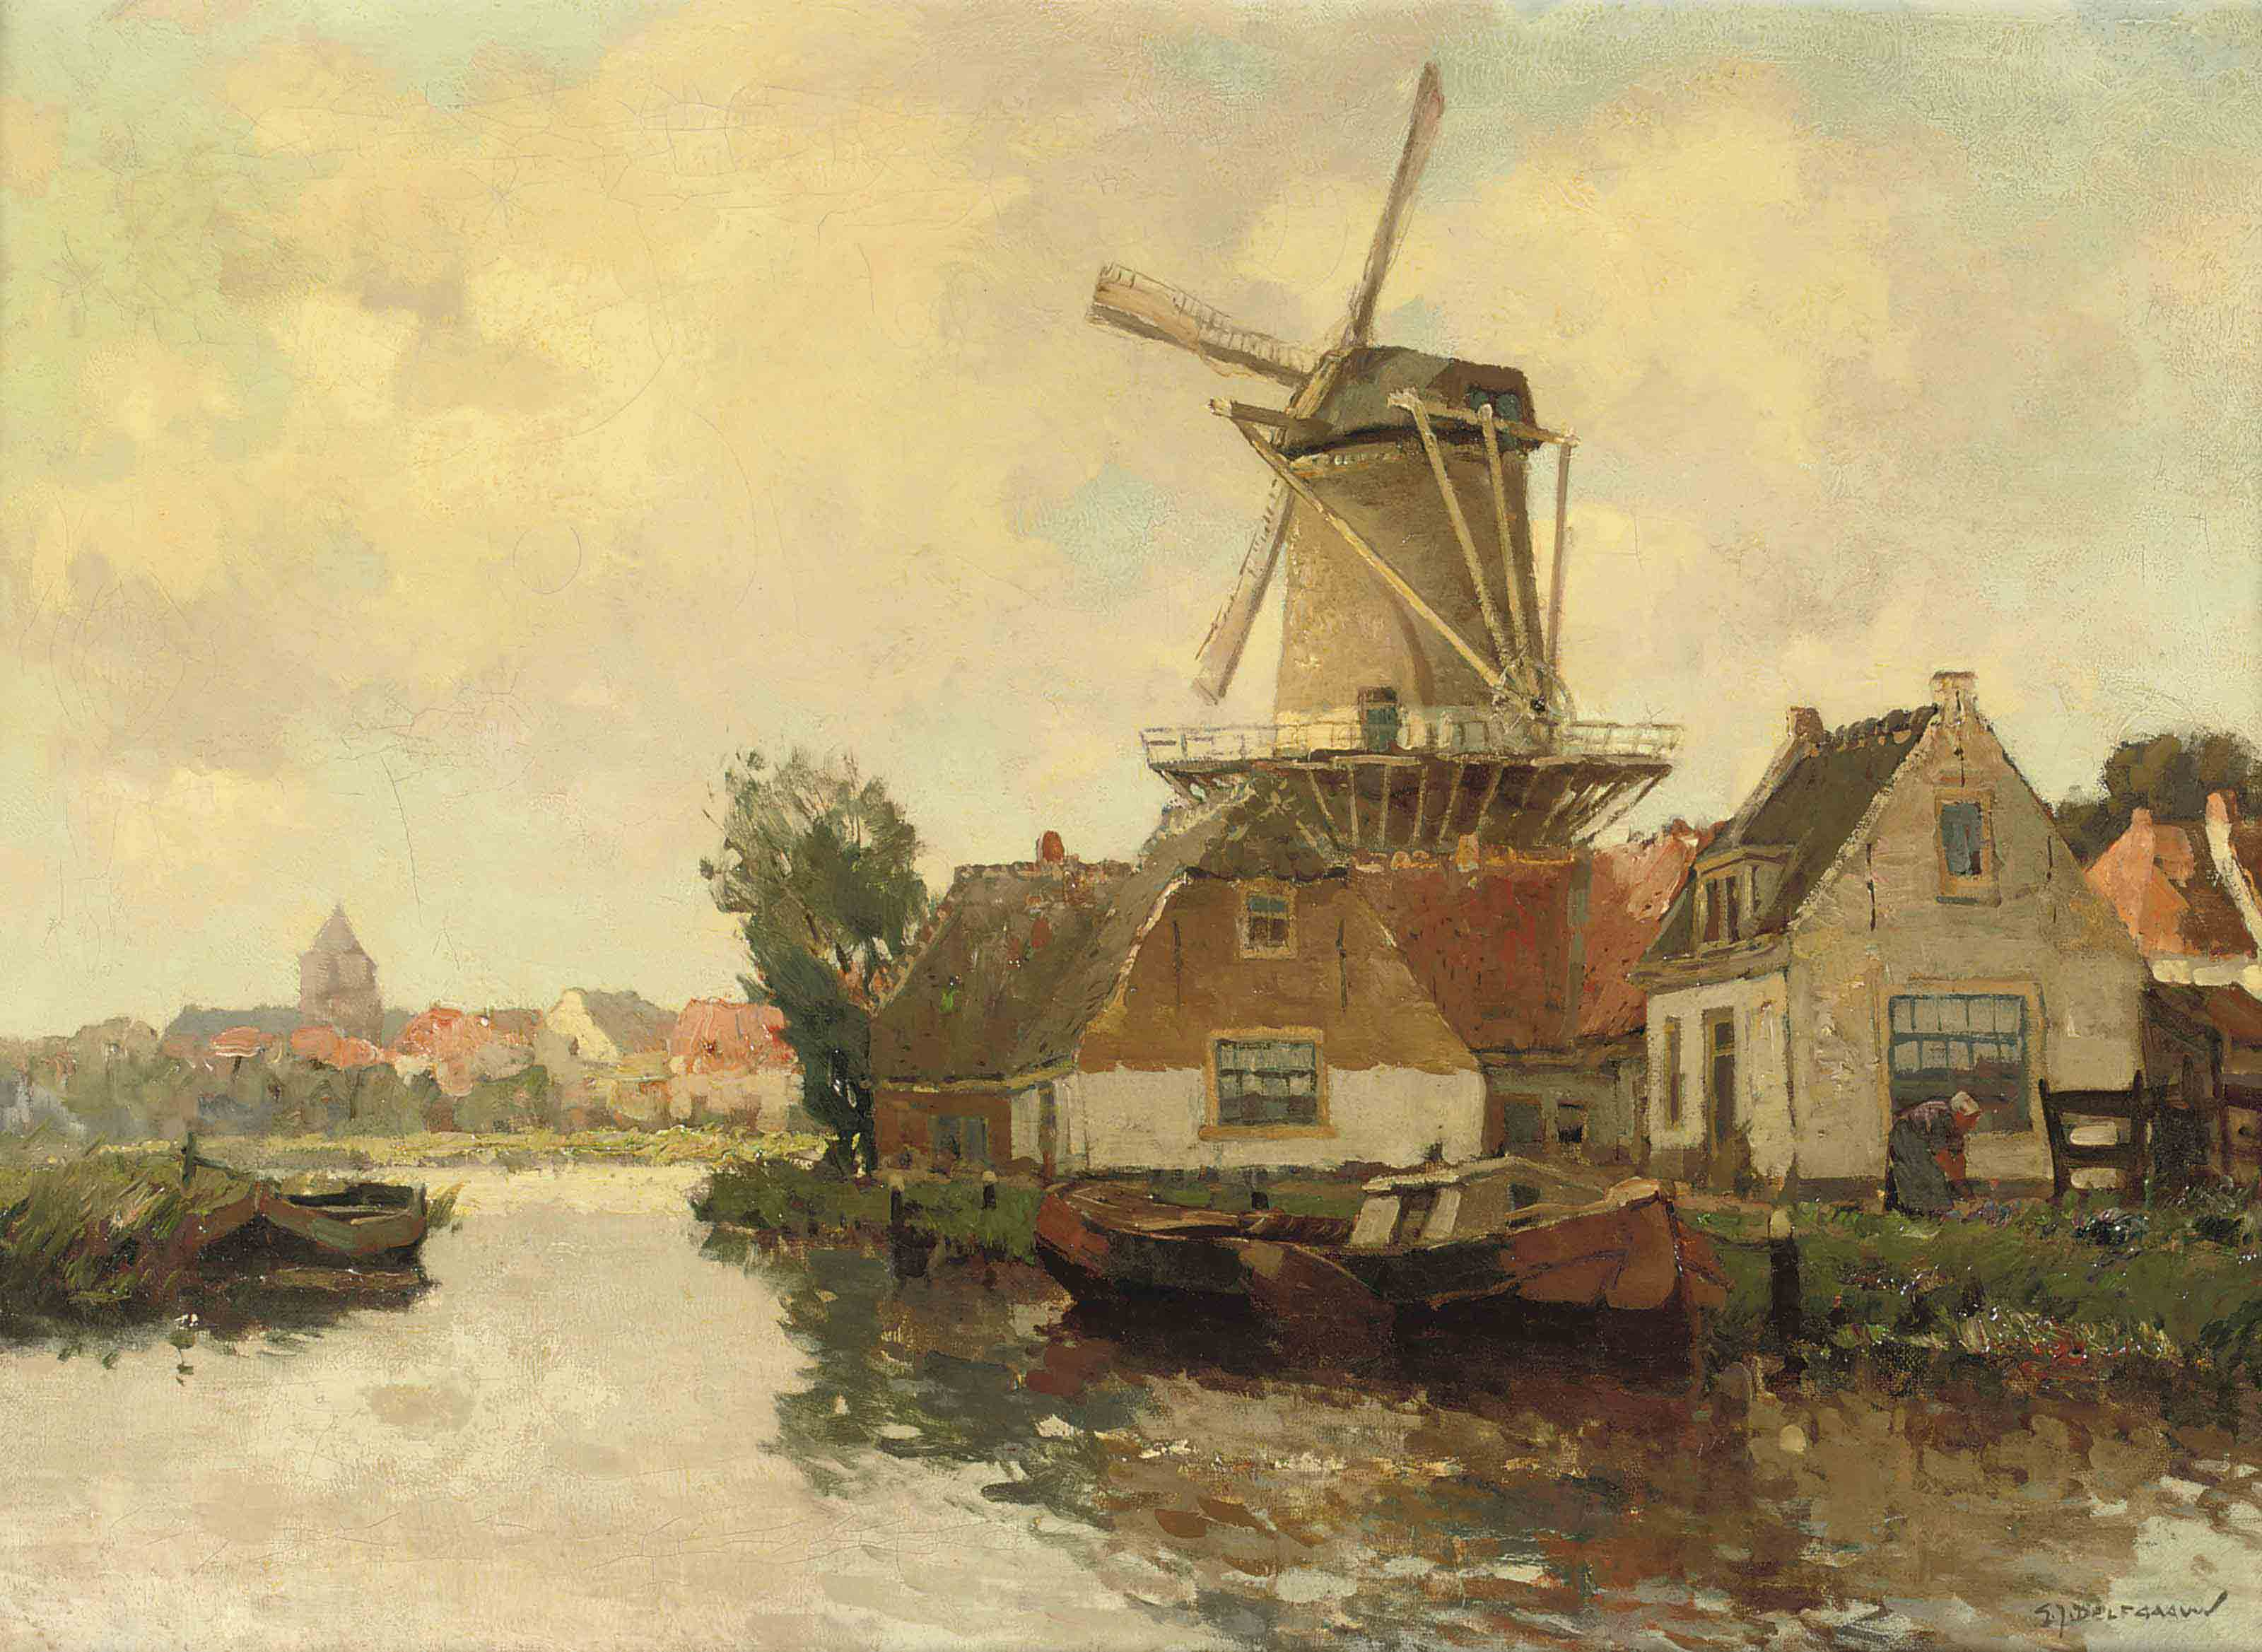 A Dutch town with a windmill